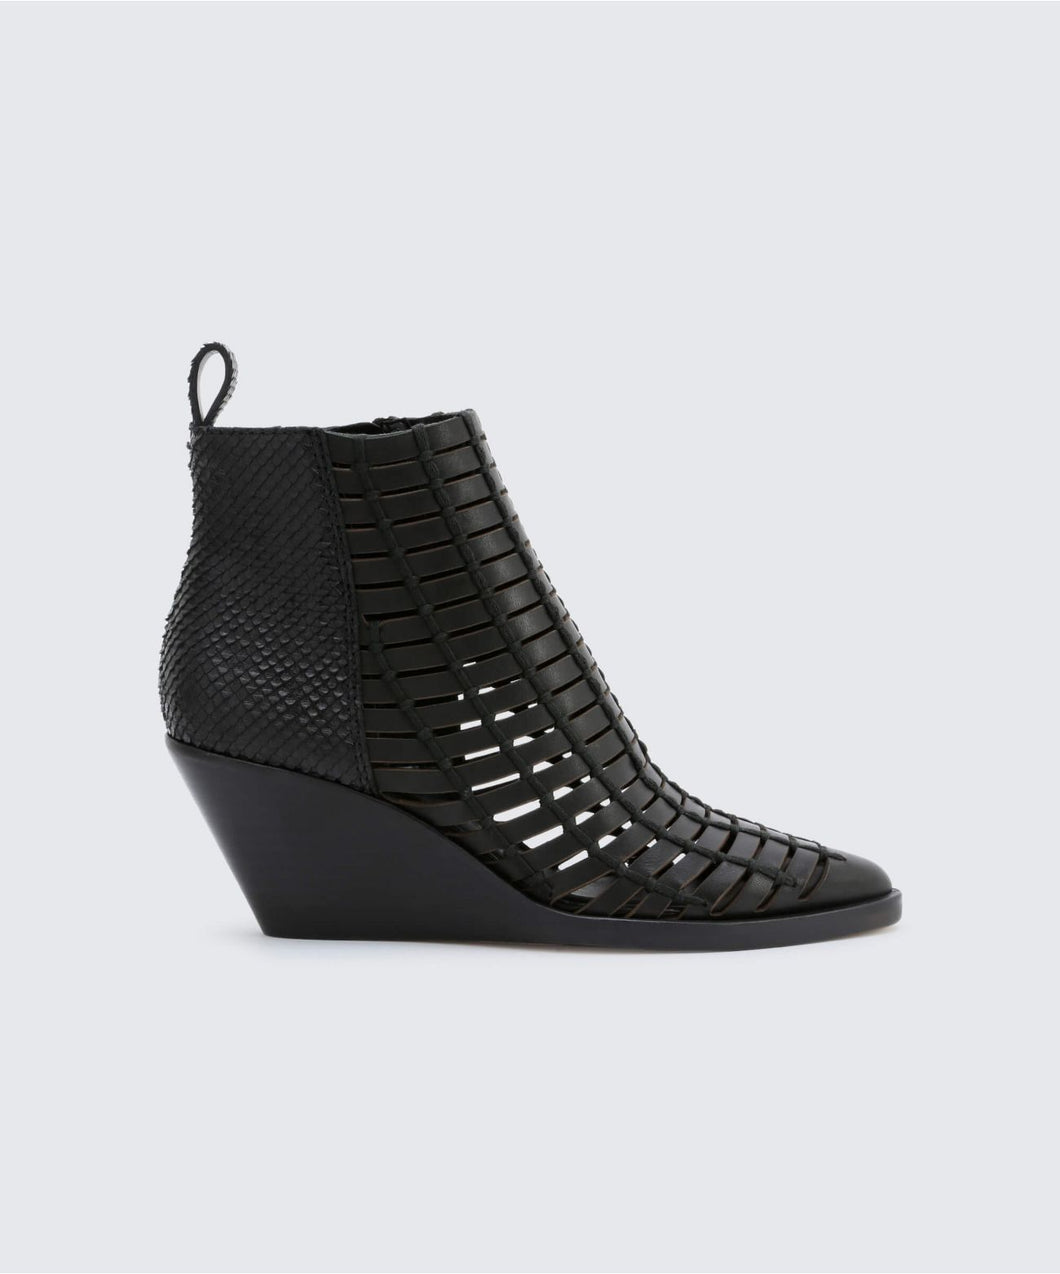 RYDEN BOOTIES IN BLACK -   Dolce Vita